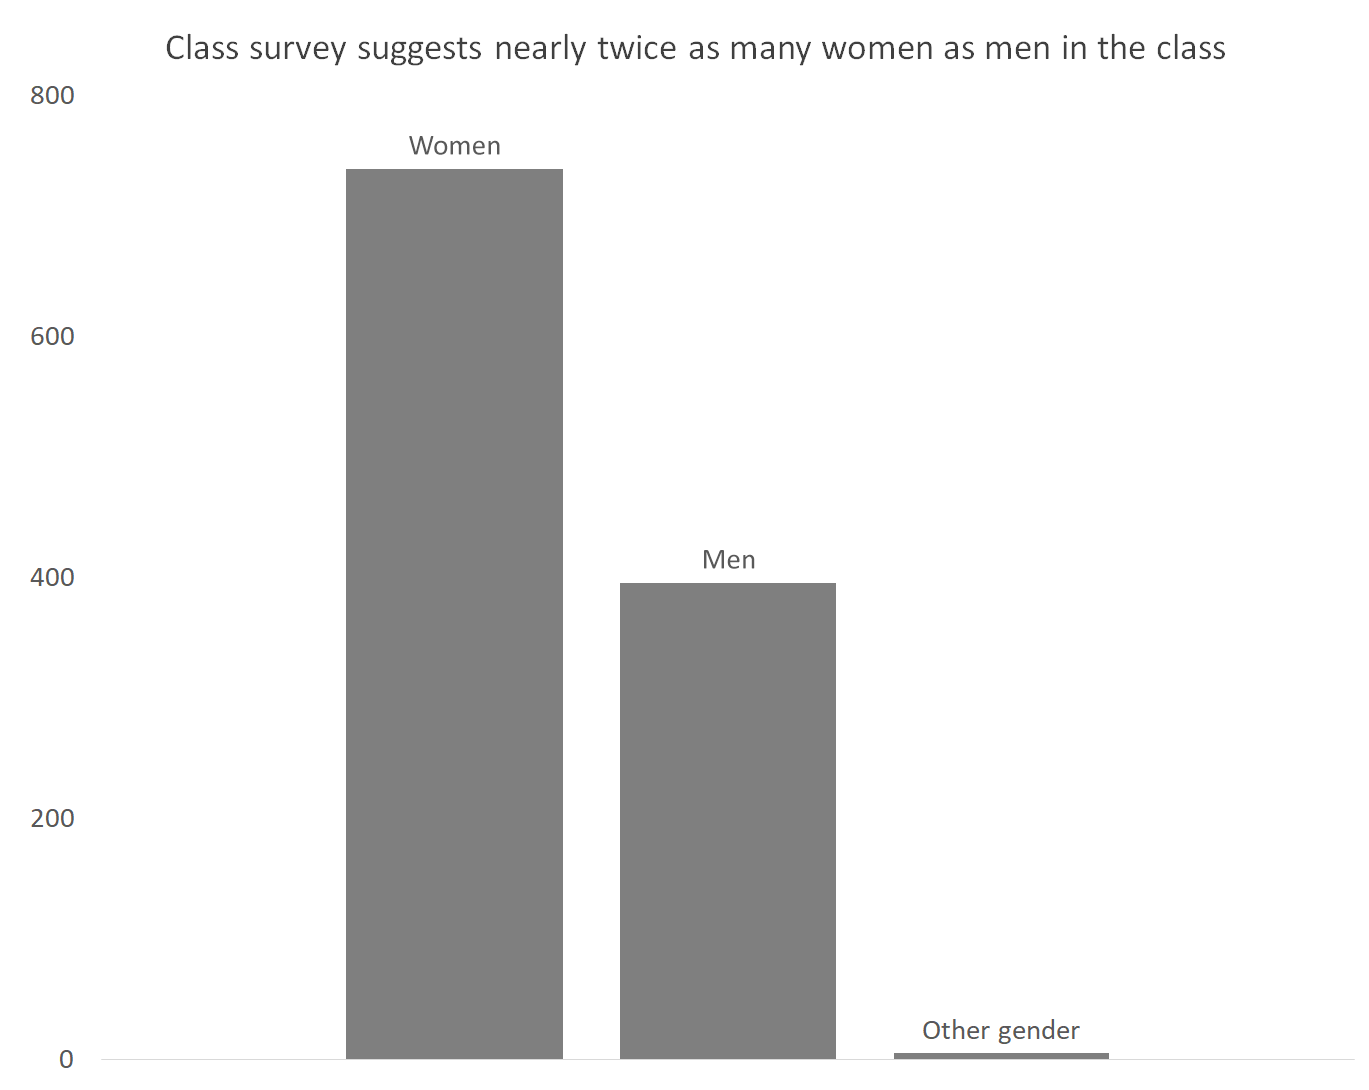 A bar chart showing the number of men, women, and other genders in a class, with nearly twice as many women as men, and very few of other genders.